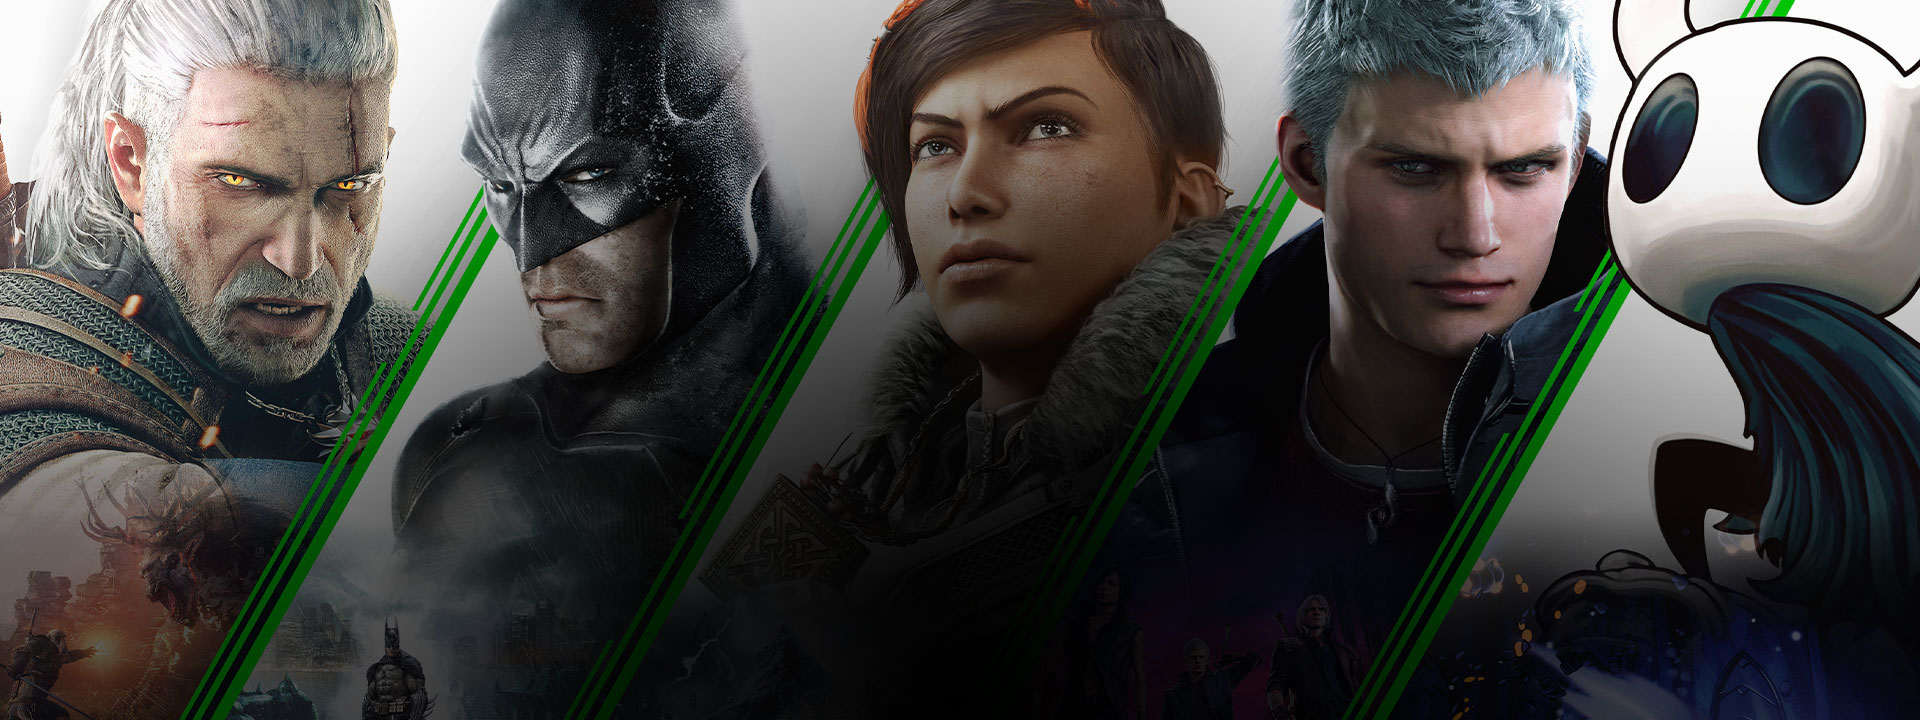 Een collage van games die beschikbaar zijn op Xbox, waaronder The Witcher 3: Wild Hunt, Batman (Arkham Series), Gears 5, Devil May Cry 5 en Hollow Knight.